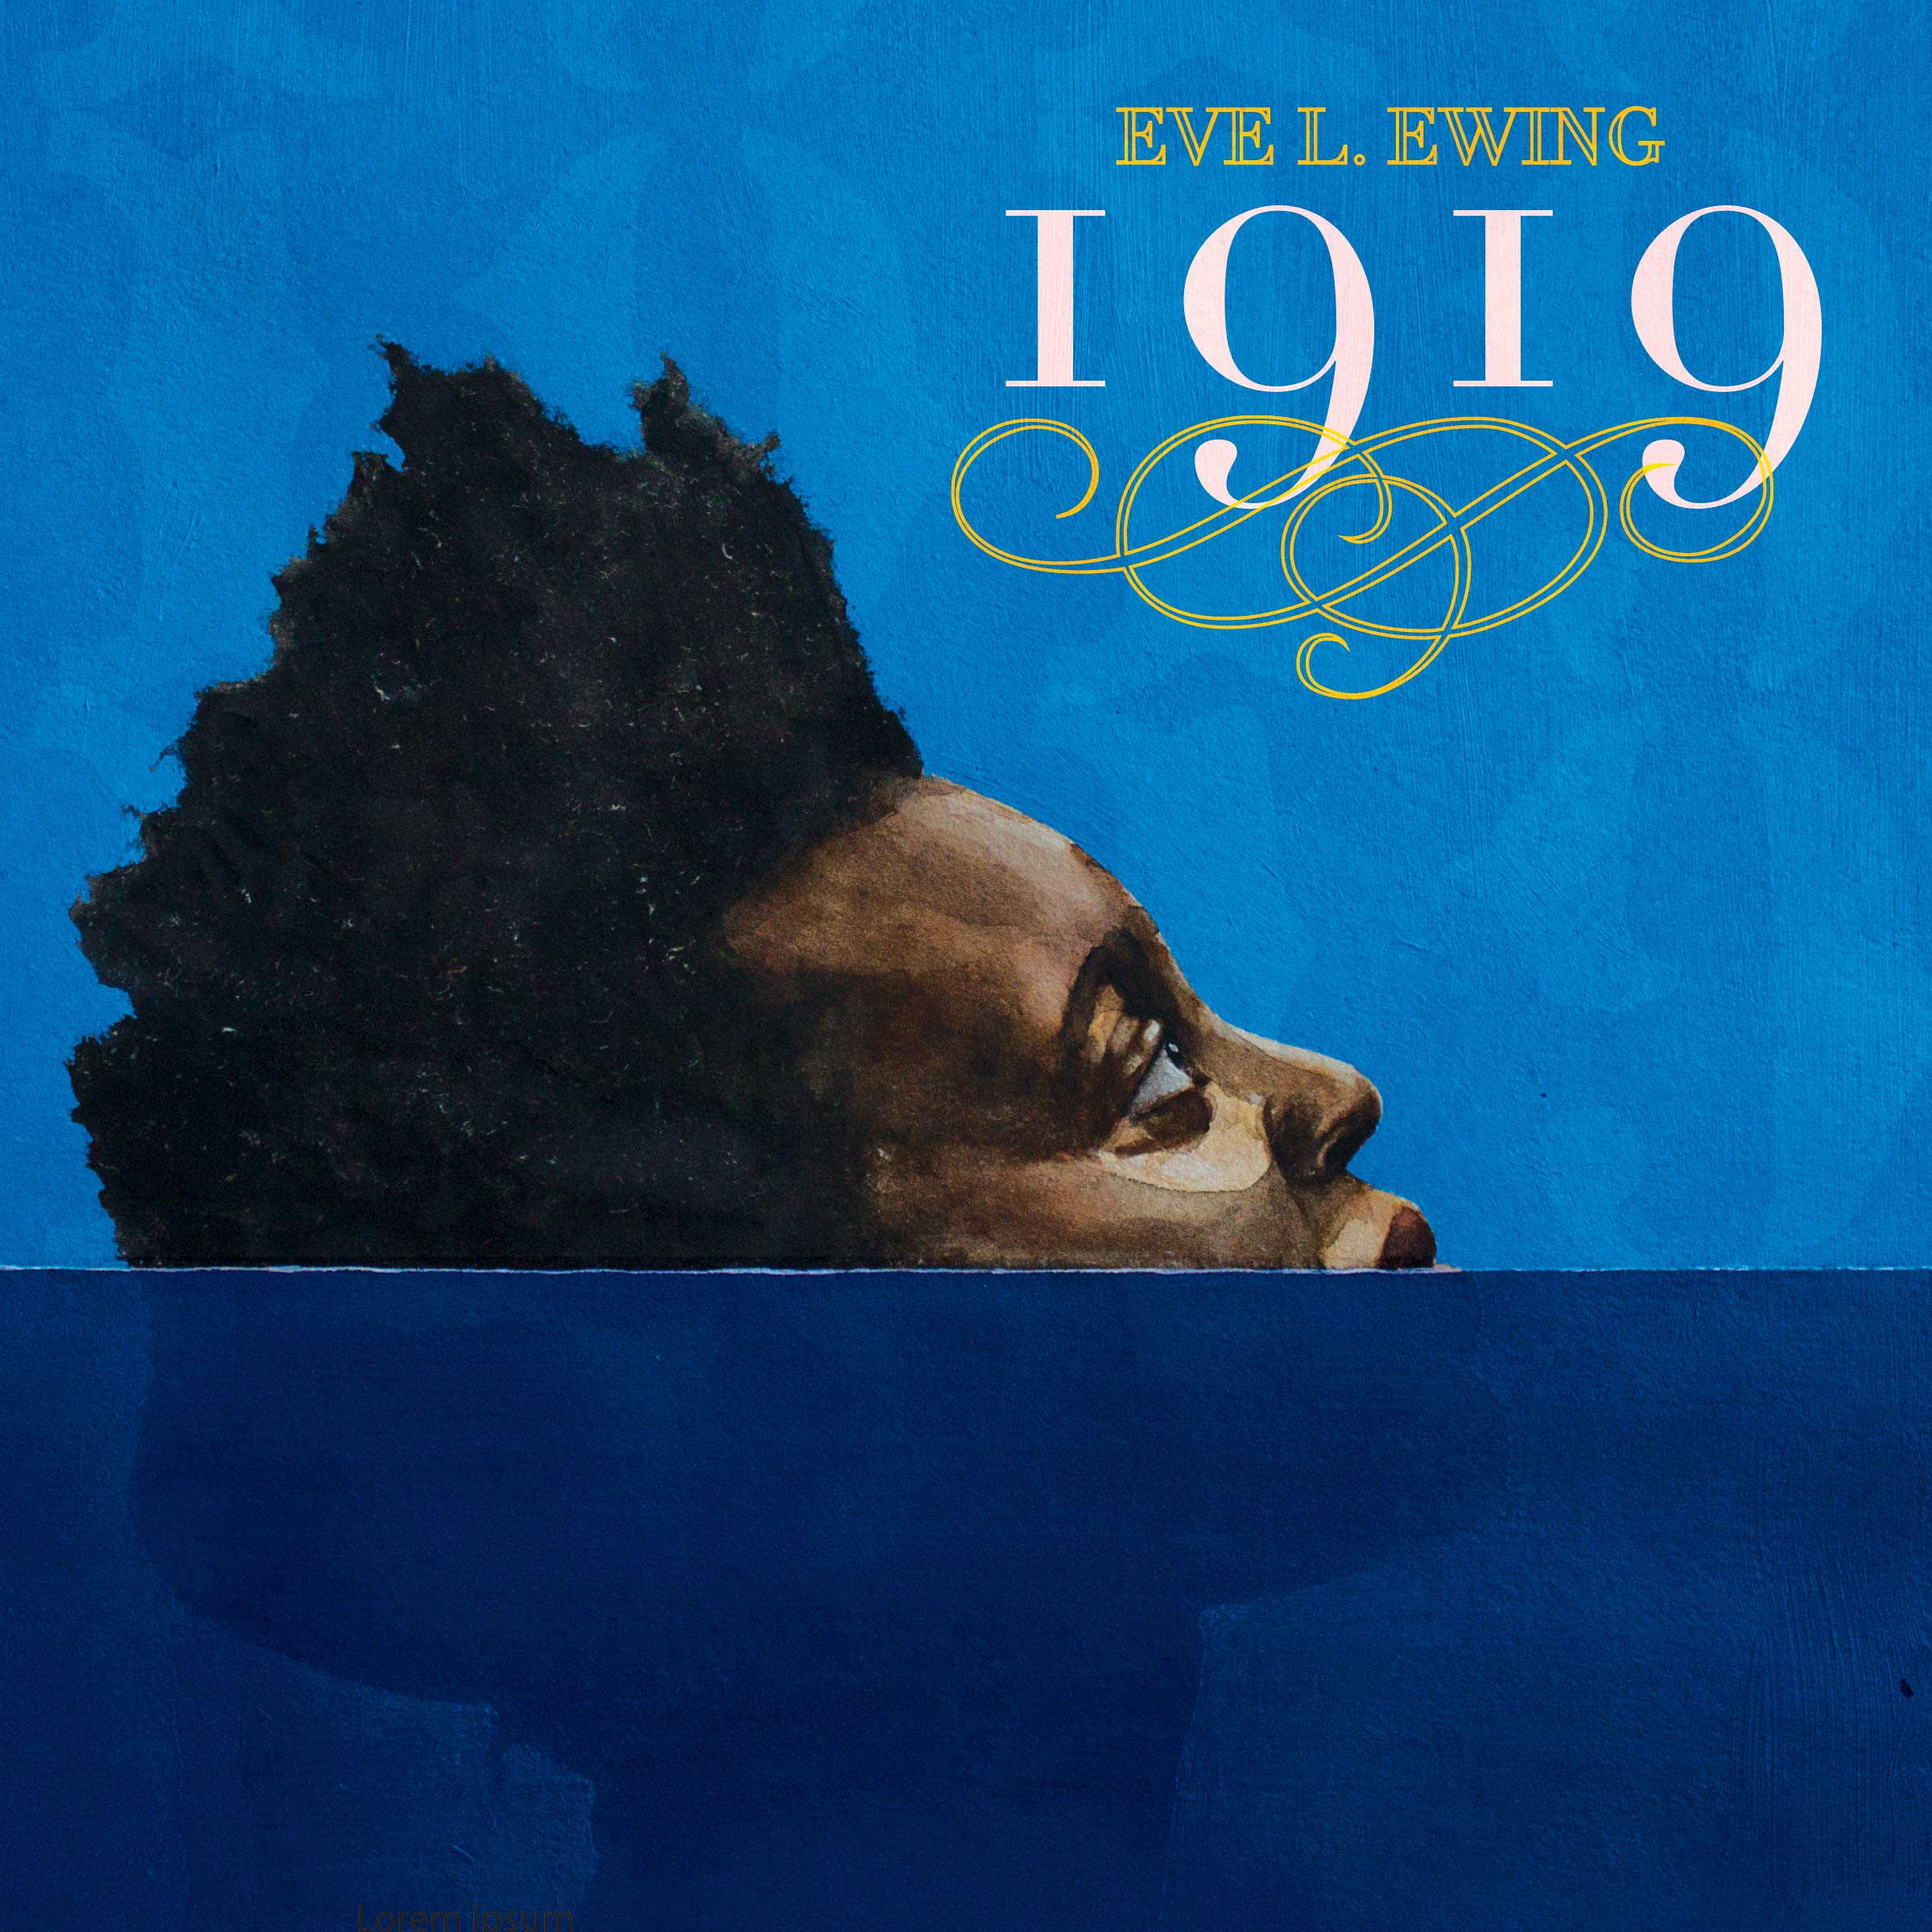 1919 by Eve L. Ewing .jpg